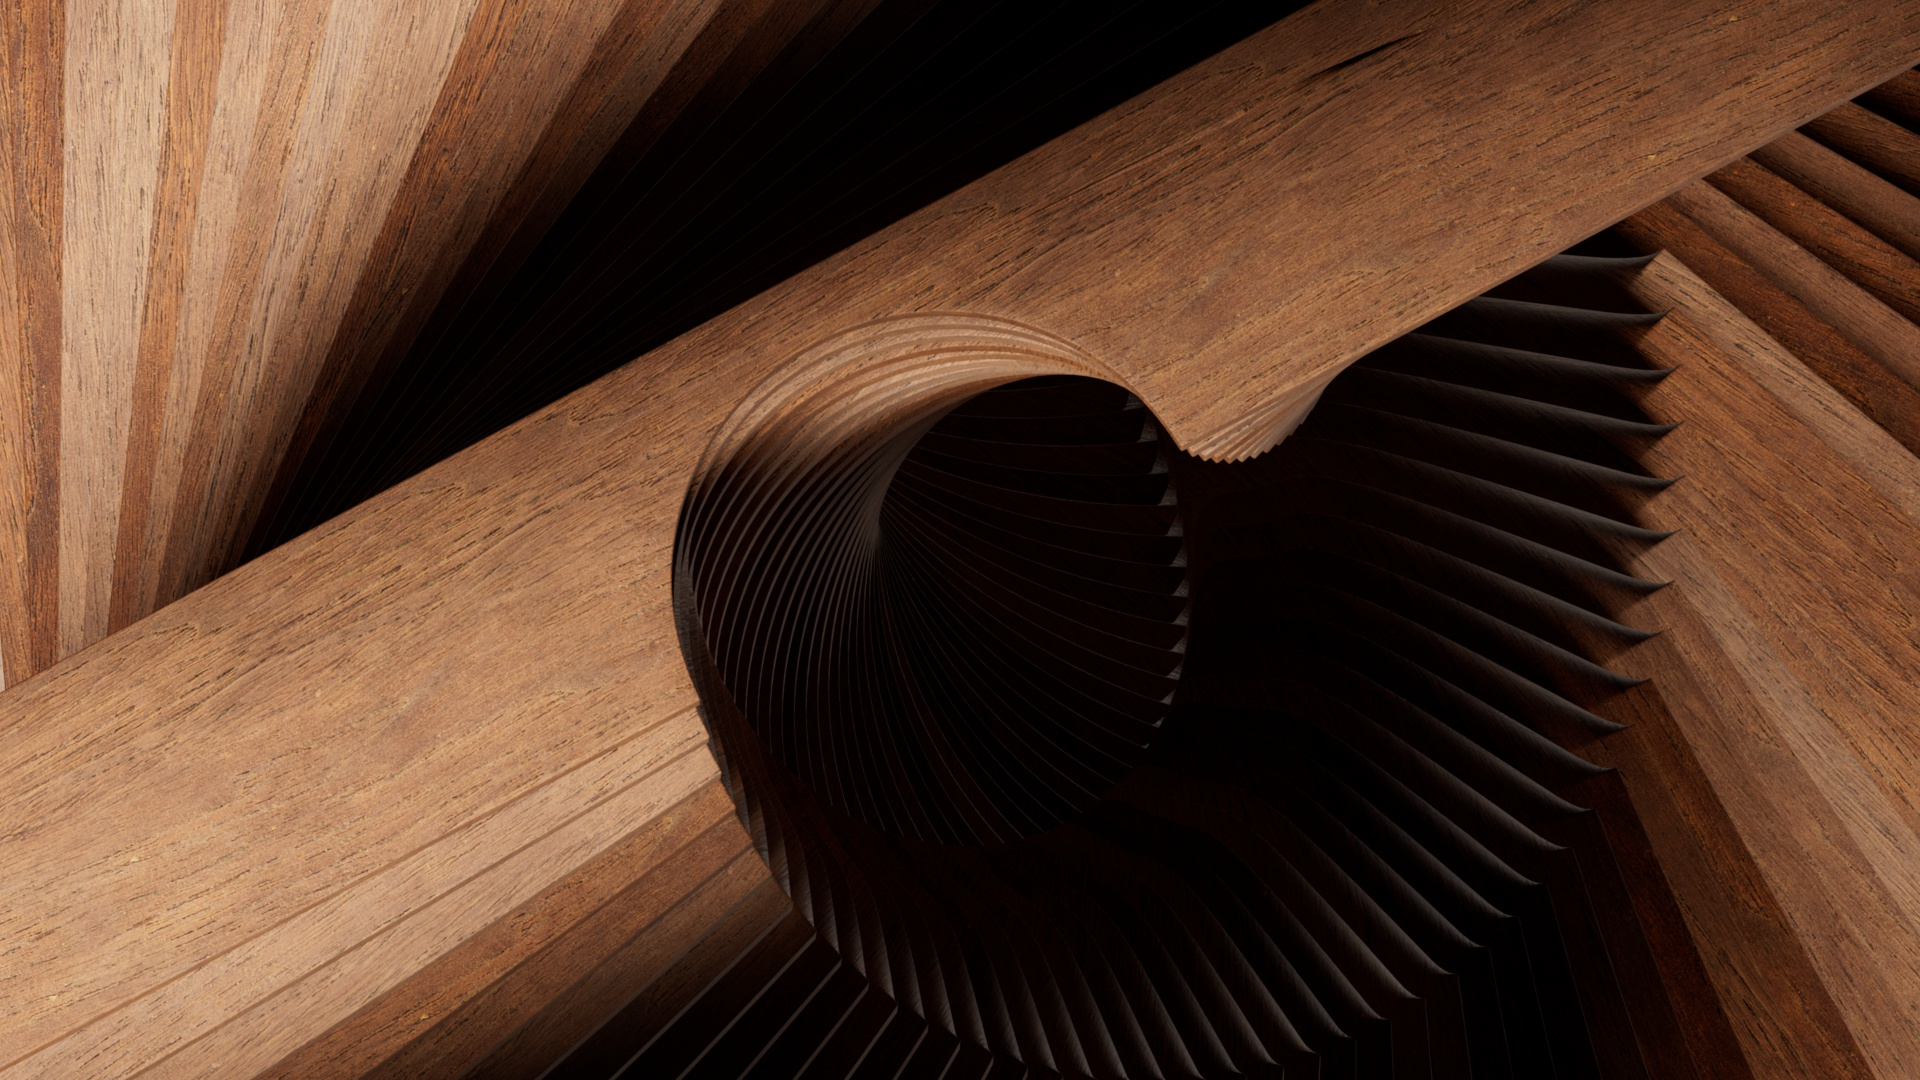 Fender_Materiality_ca09